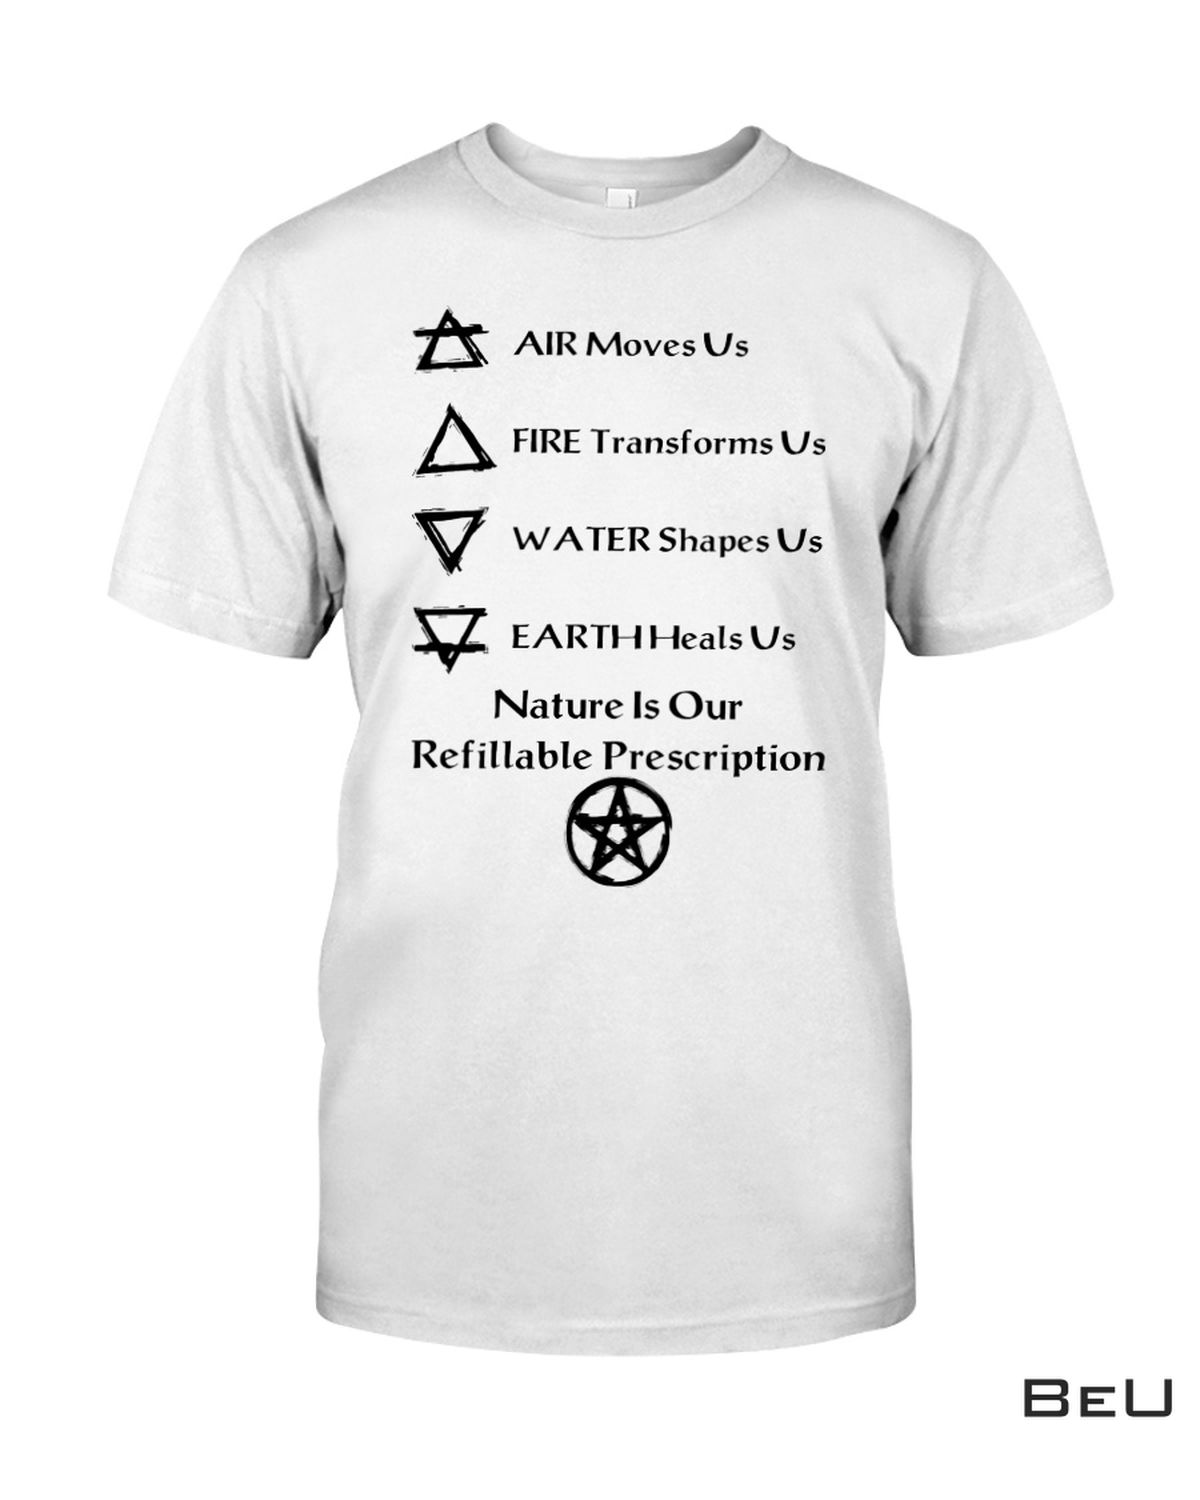 Witch - Air Moves Us Fire Transforms Us Shirt, hoodie, tank top